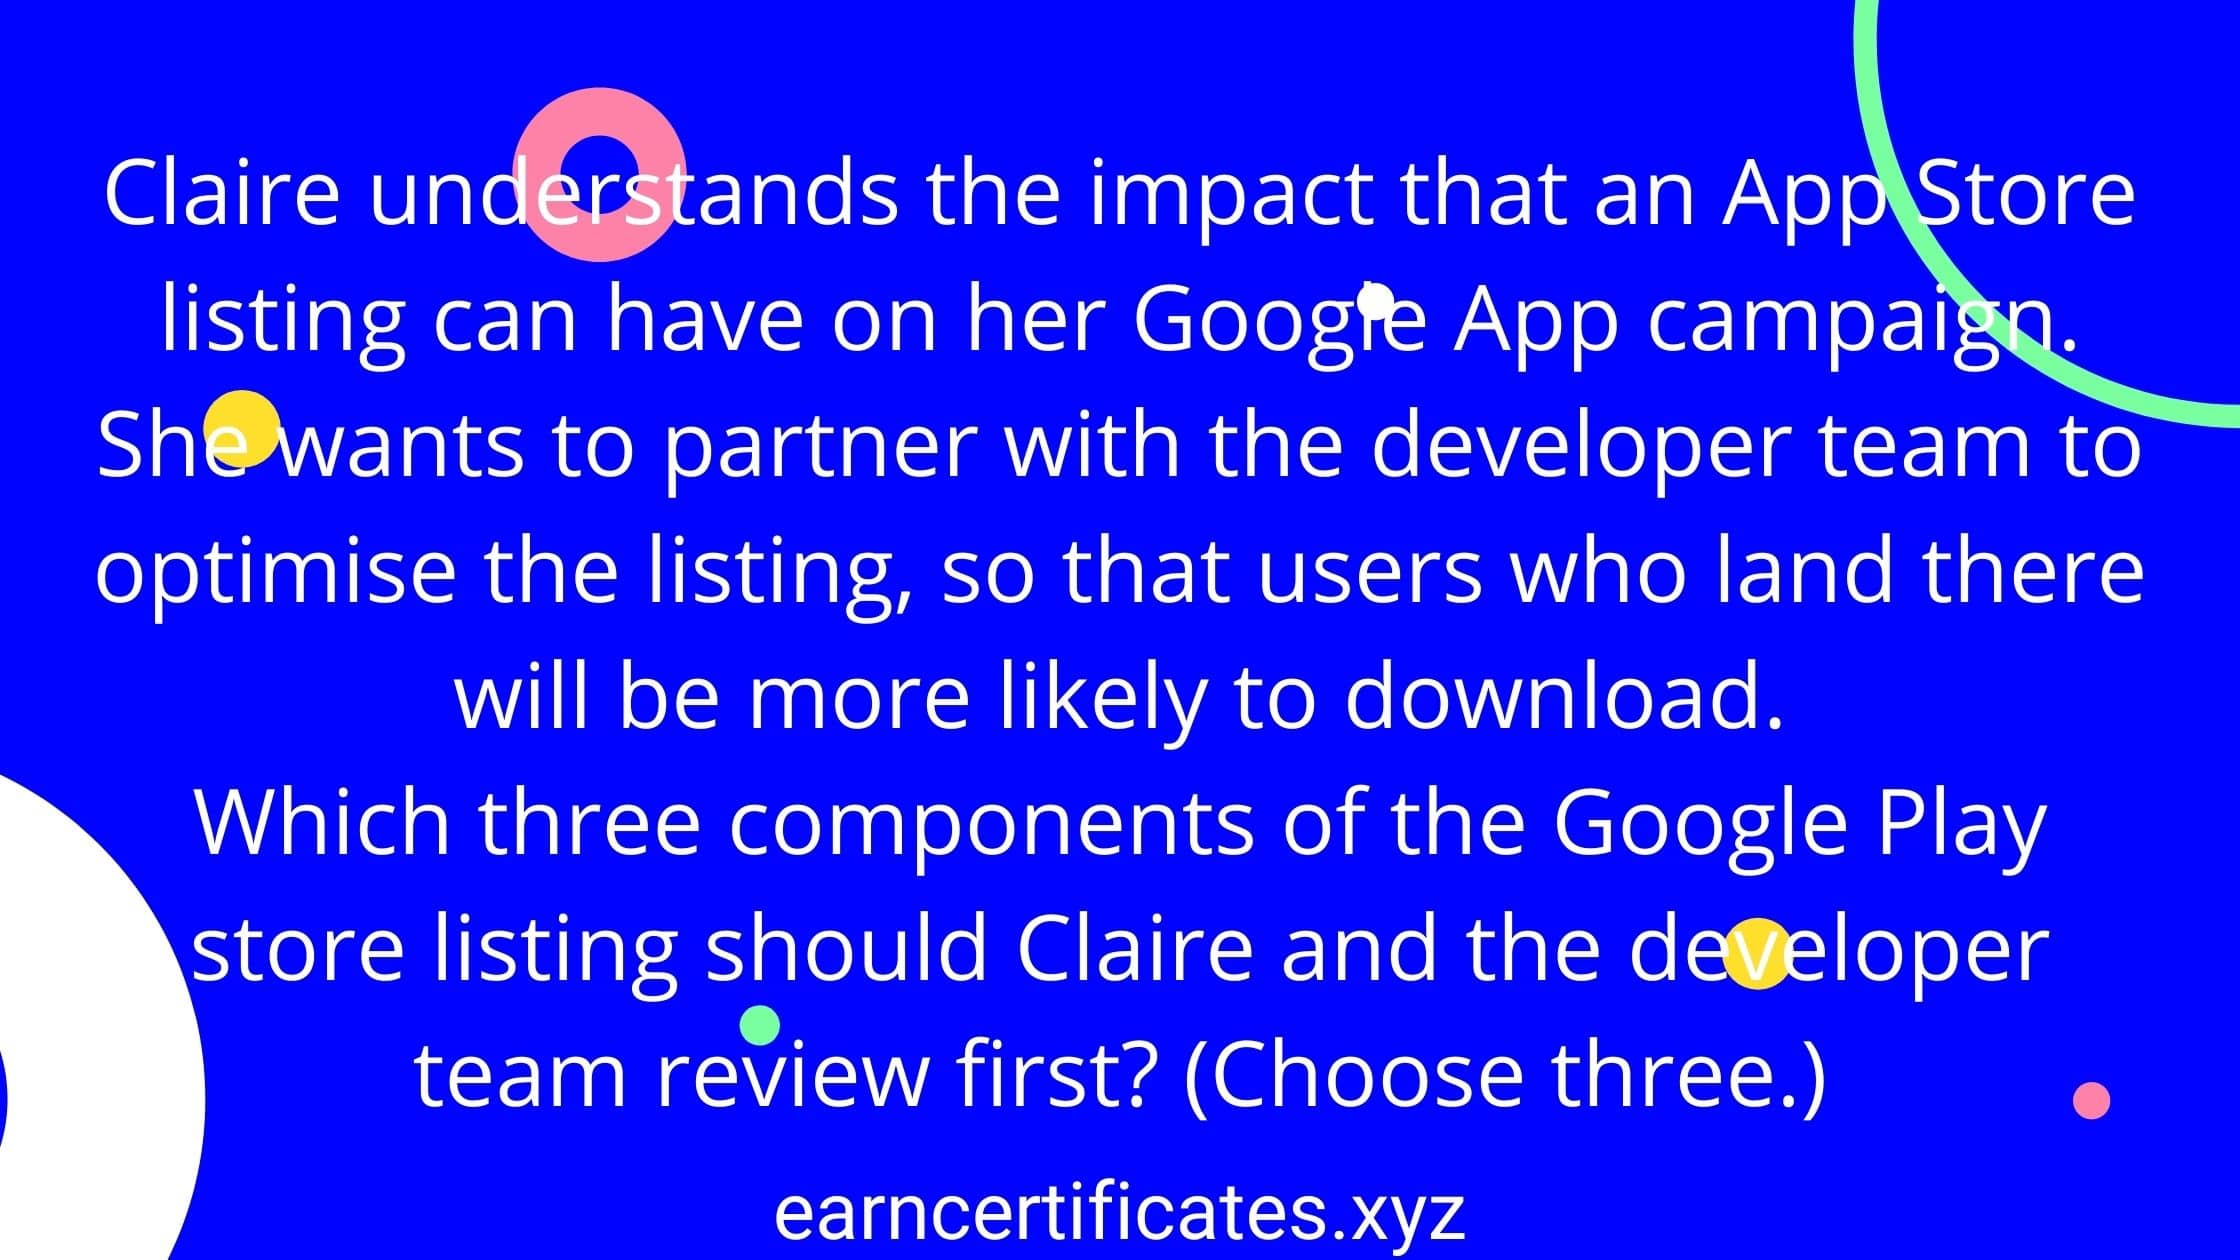 Claire understands the impact that an App Store listing can have on her Google App campaign. She wants to partner with the developer team to optimise the listing, so that users who land there will be more likely to download. Which three components of the Google Play store listing should Claire and the developer team review first? (Choose three.)